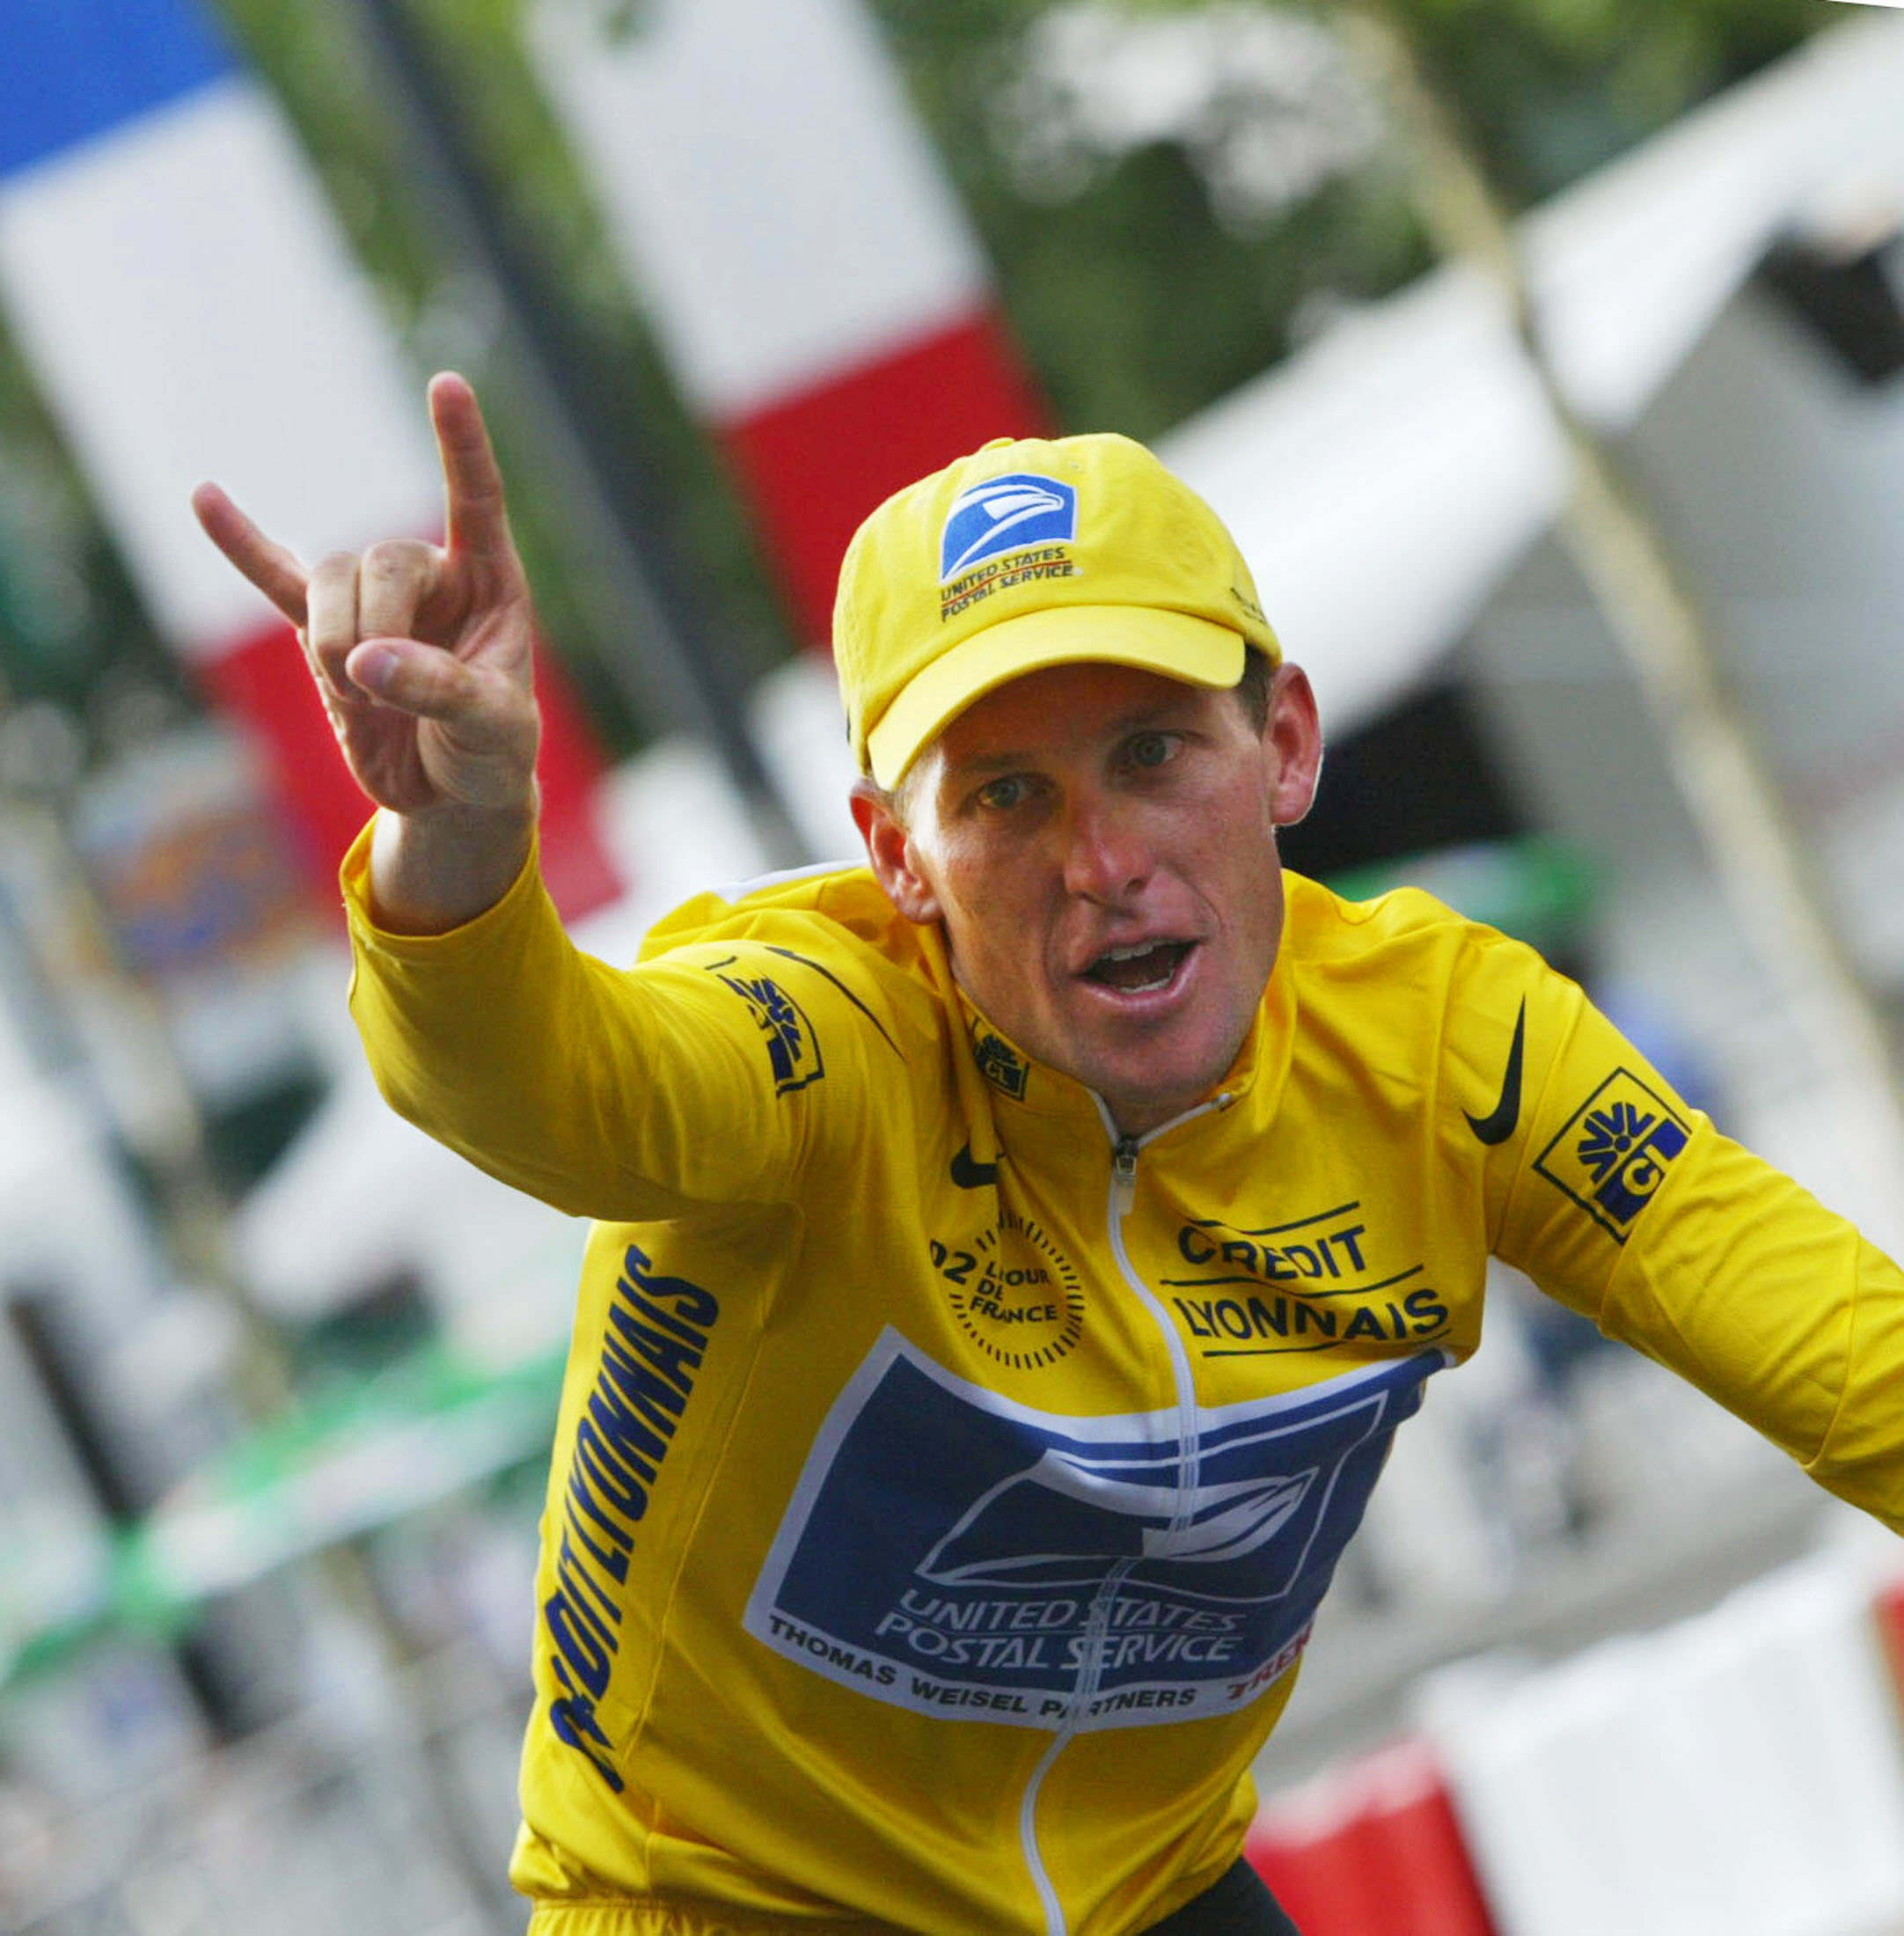 The 2002 Tour de France winner US Lance Armstrong celebrates as he makes his victory lap on the Champs-Elysees after the last stage of the 89th French cycling race in July 2002.